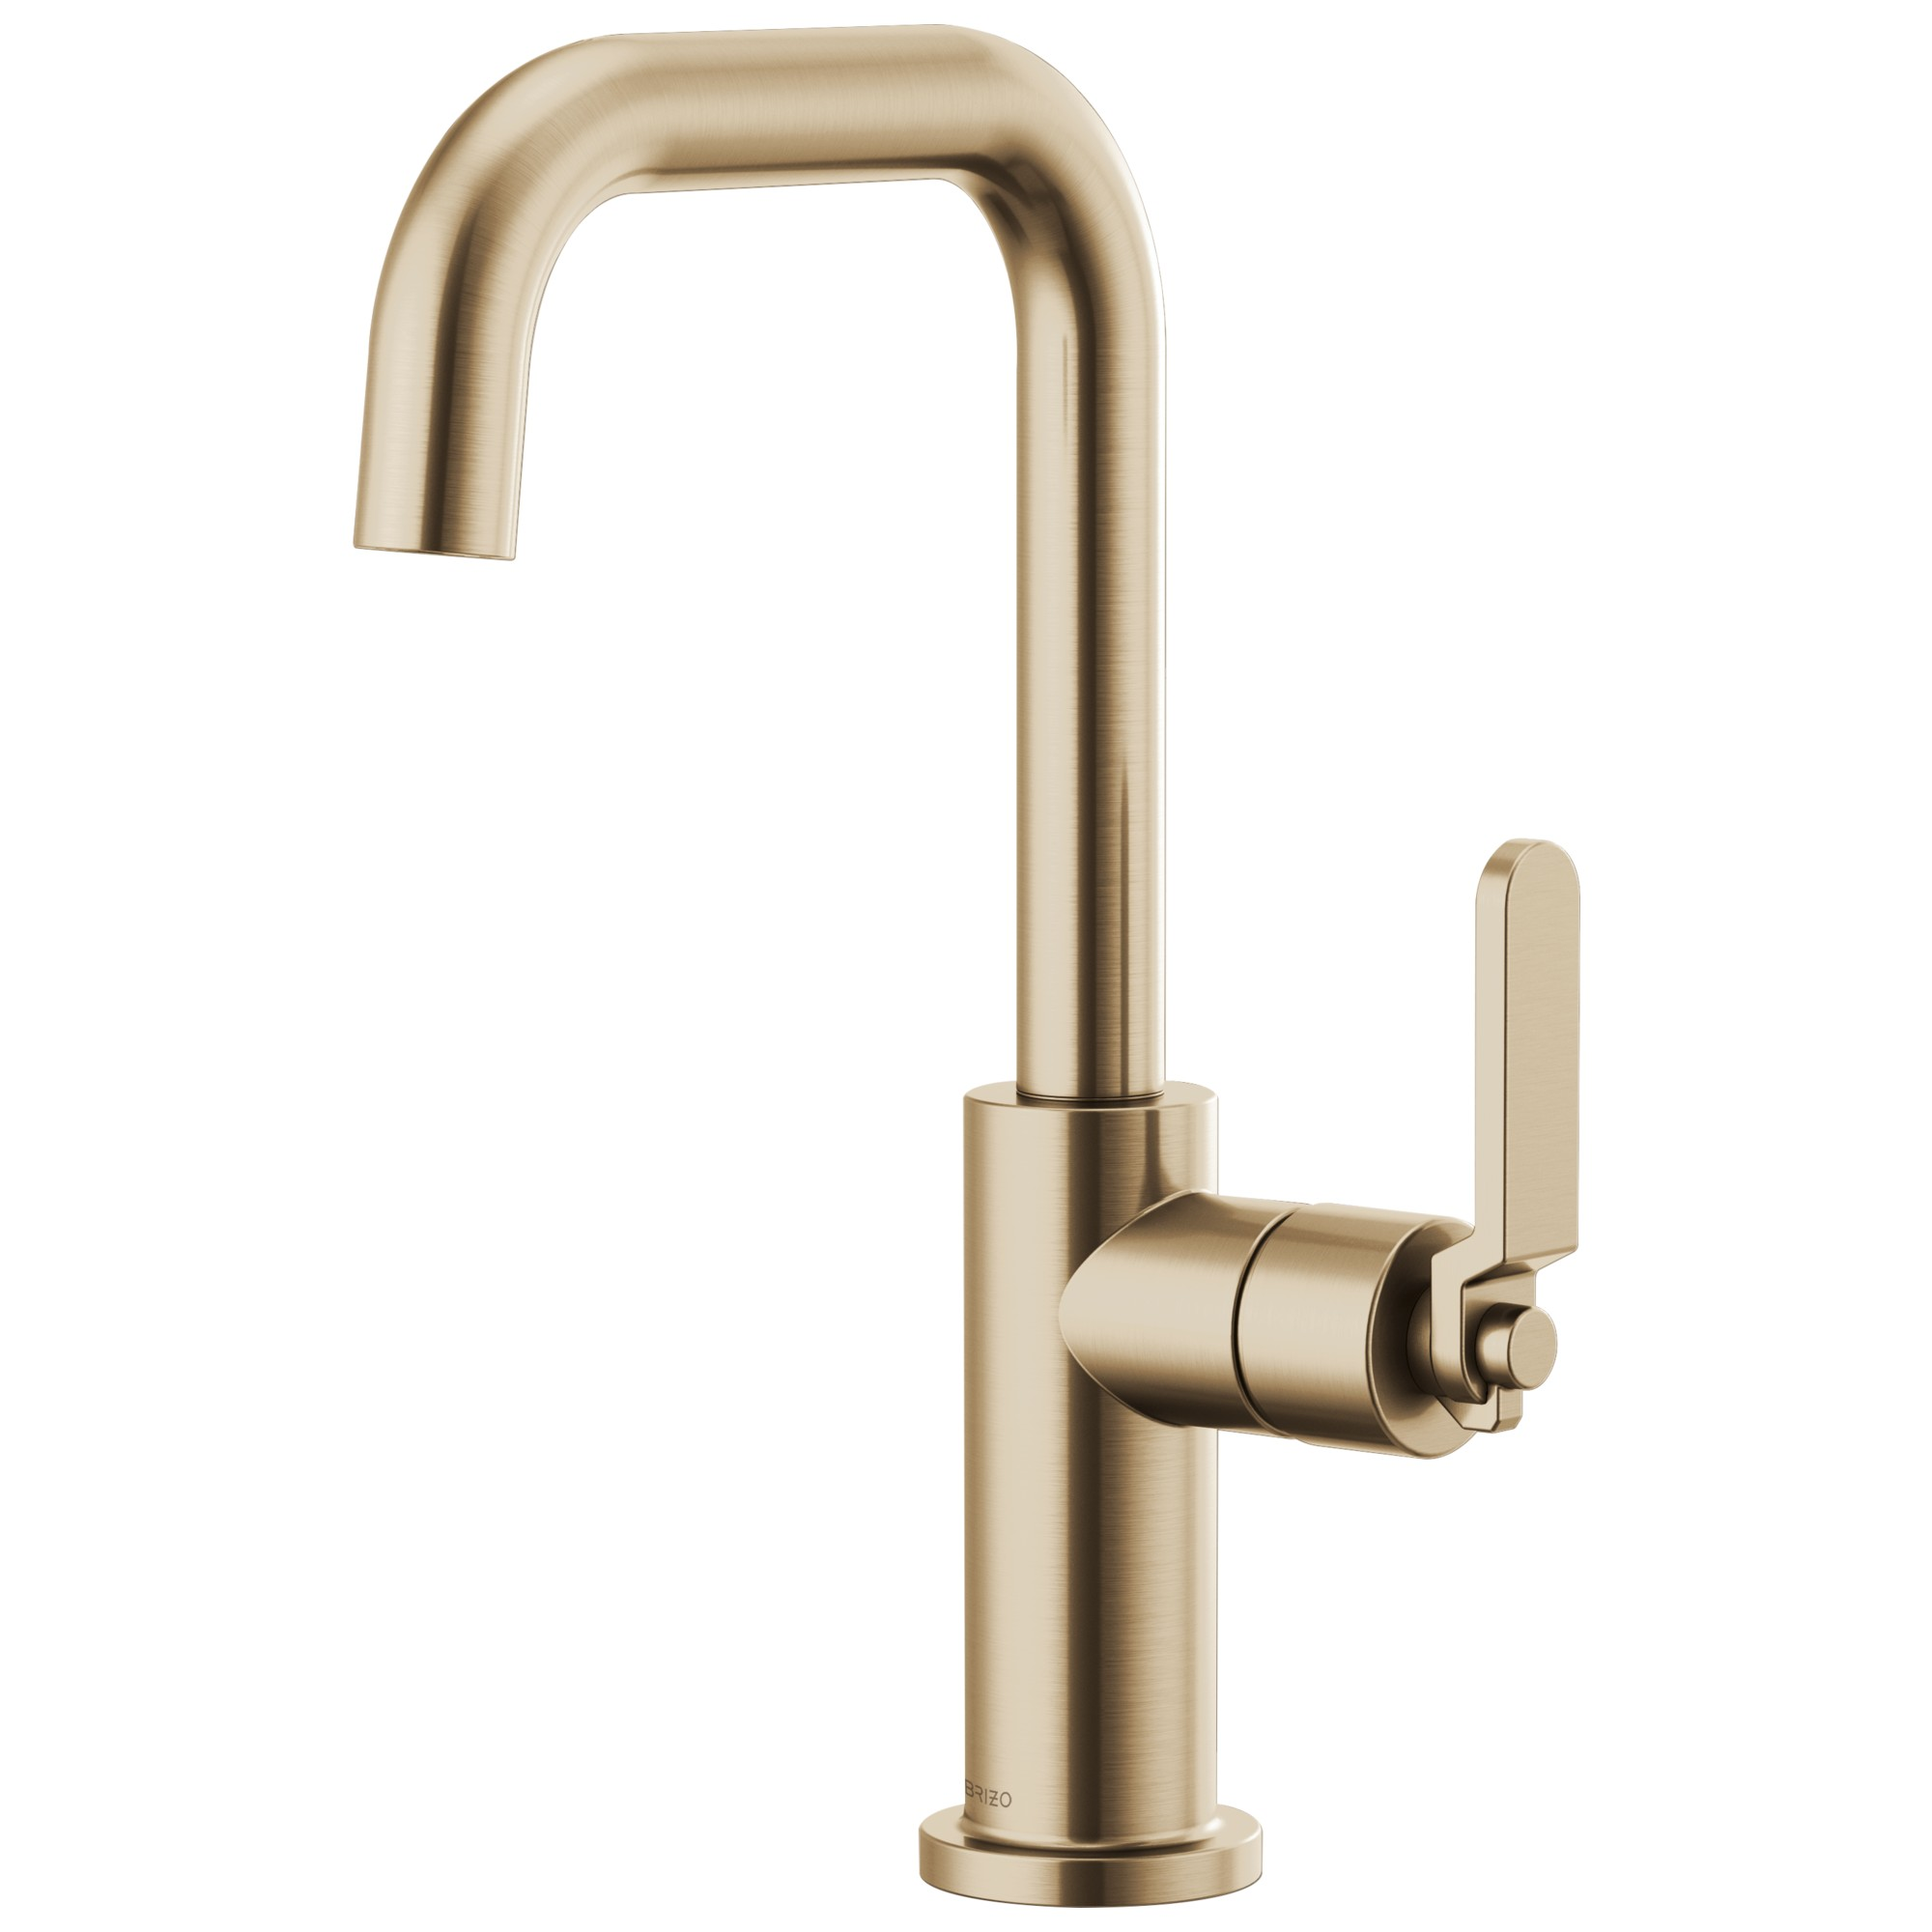 Brizo 61054LF-GL Litze Bar Faucet with Square Spout and Industrial Handle - Luxe Gold